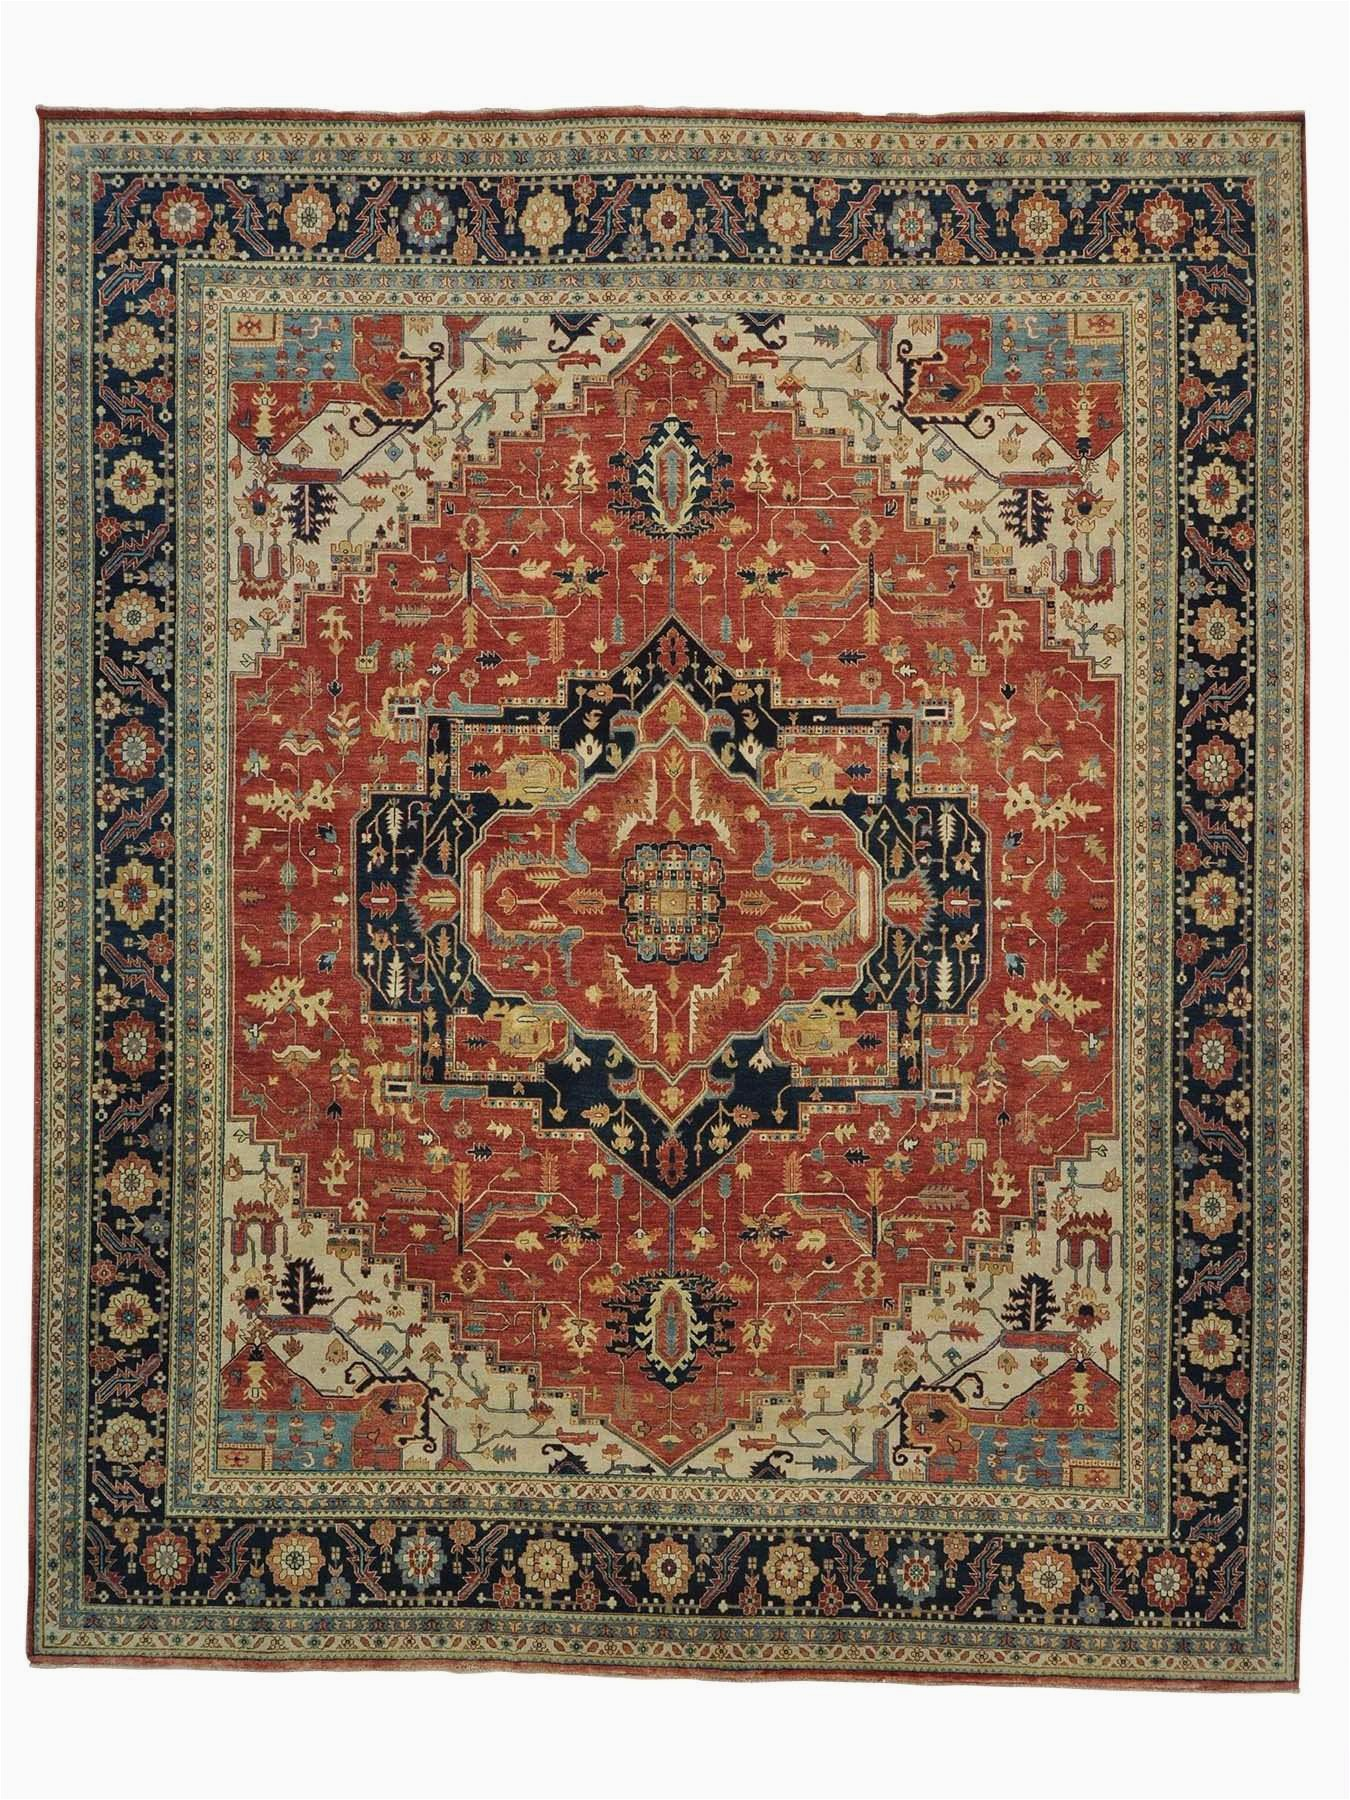 Large area Rugs 12 X 15 12 X 15 Vintage Heriz Gallery Size area Rug